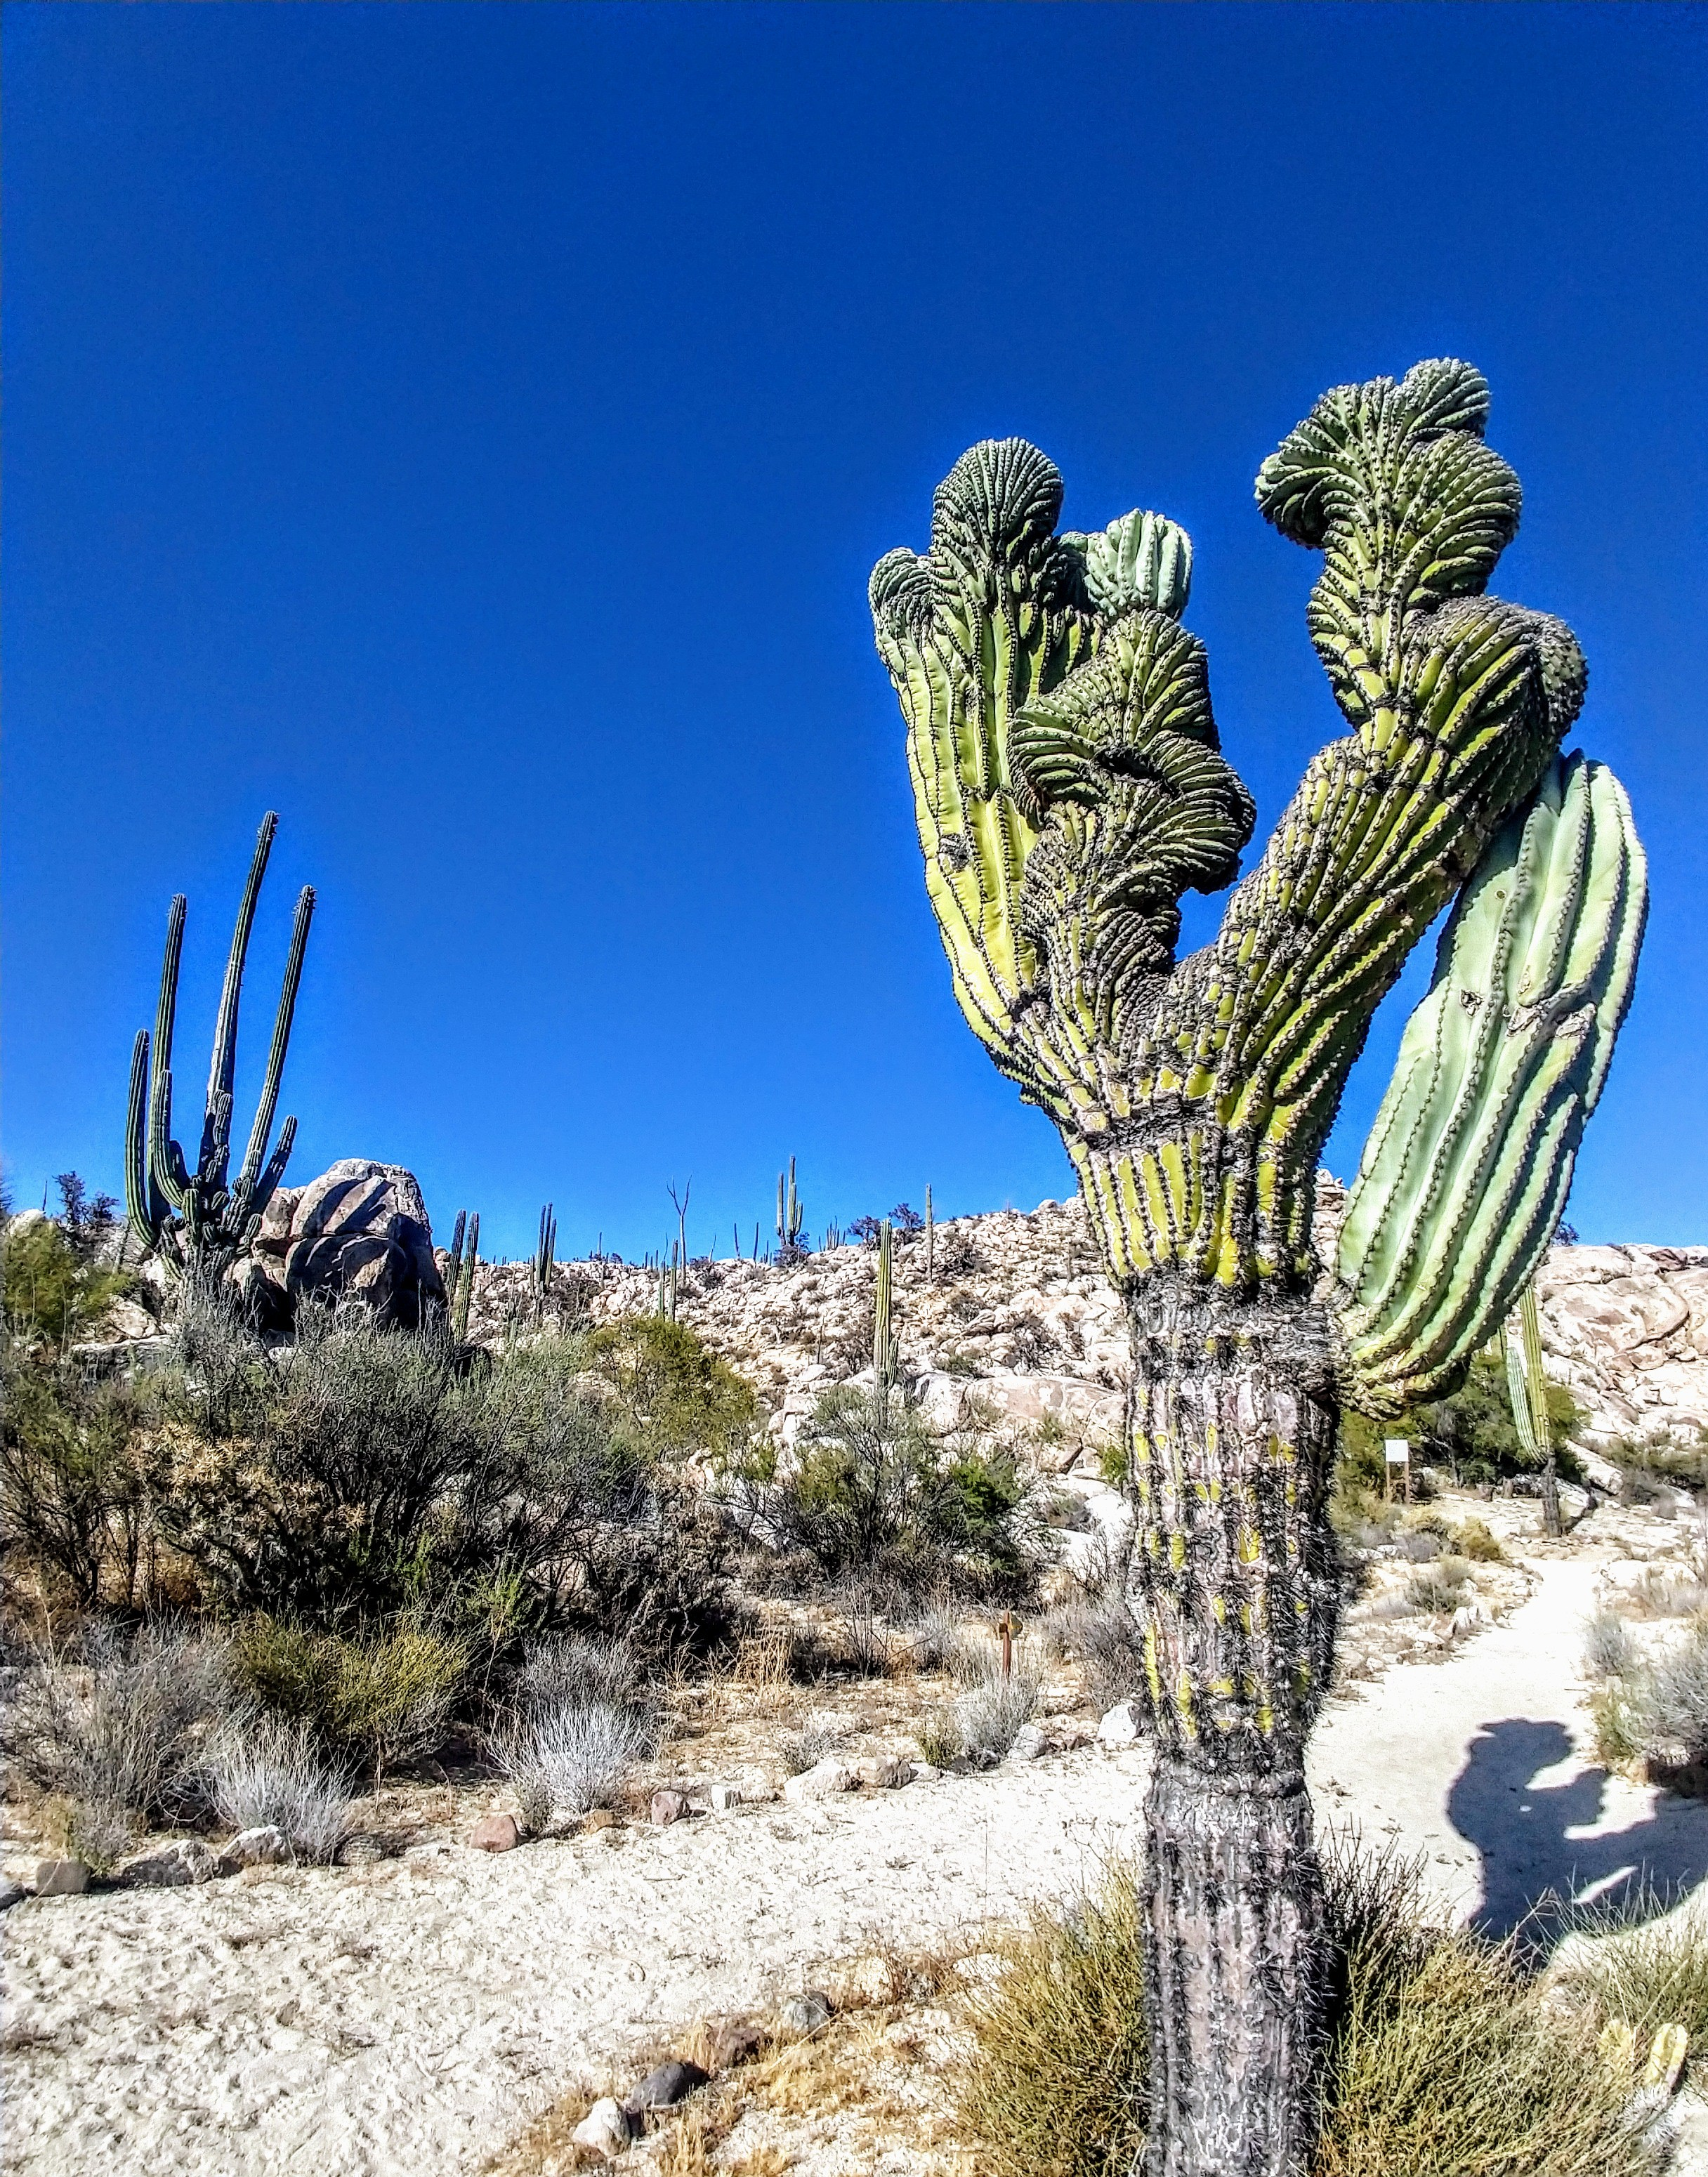 Catch a Cactuss in Cataviña! Only 20 yards to the next snake!